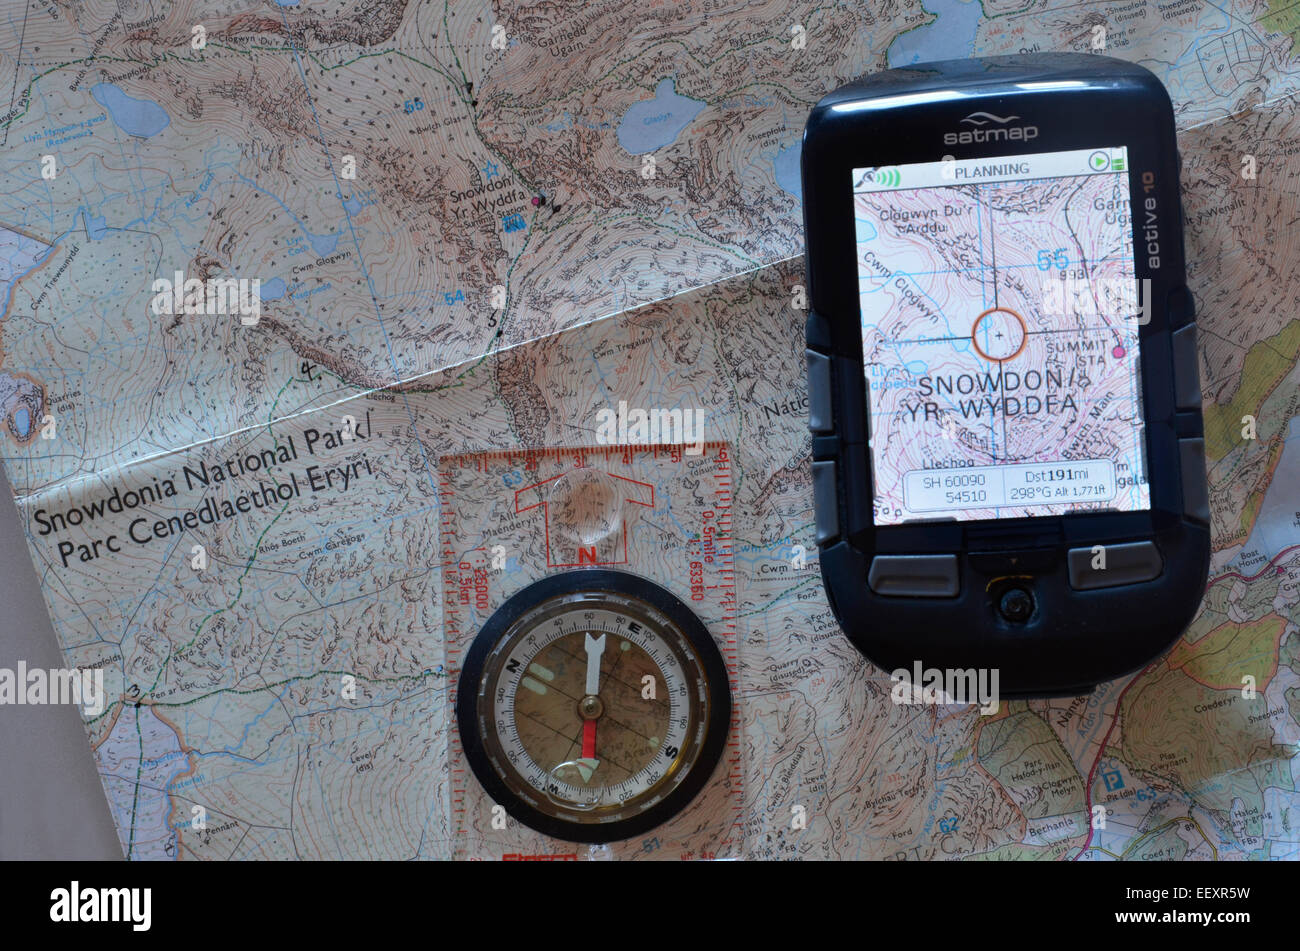 An Ordnance Survey Map, compass and GPS unit - Stock Image